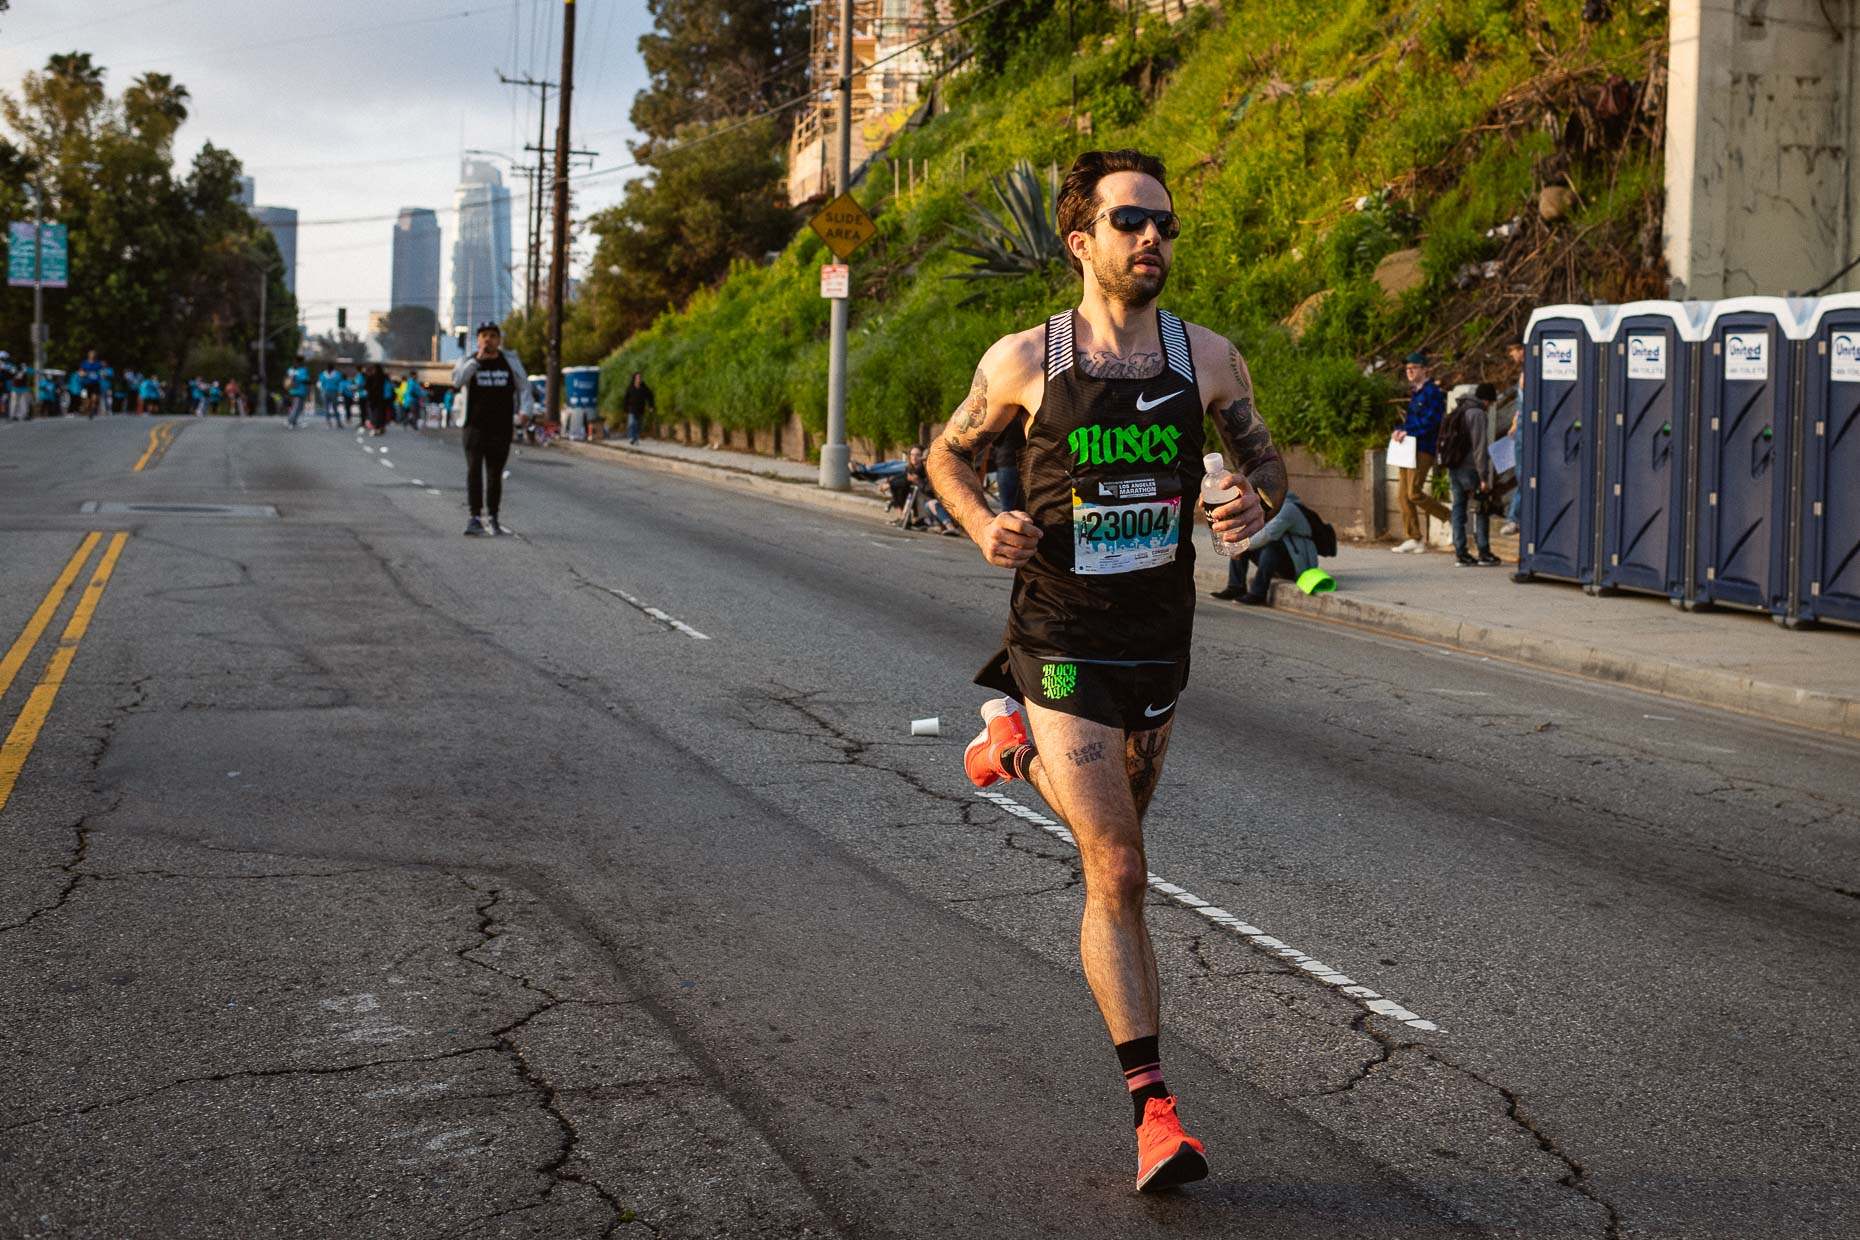 LA_Marathon_24_03_2019_photo_Christian_Brecheis-7821